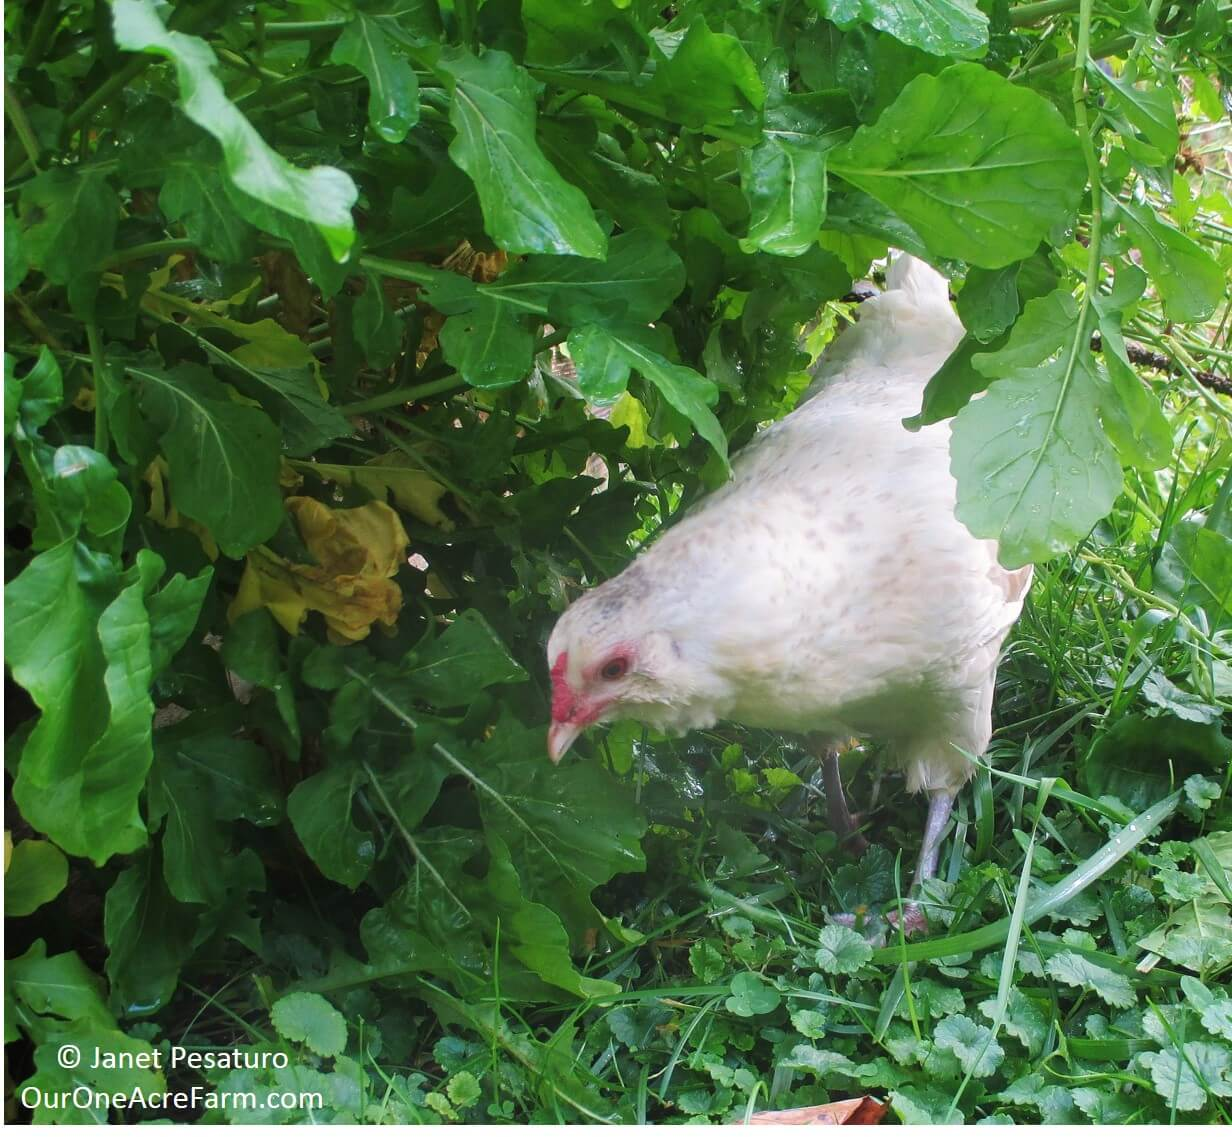 Limited Free Range Chickens: 12 Tips to Balance Freedom